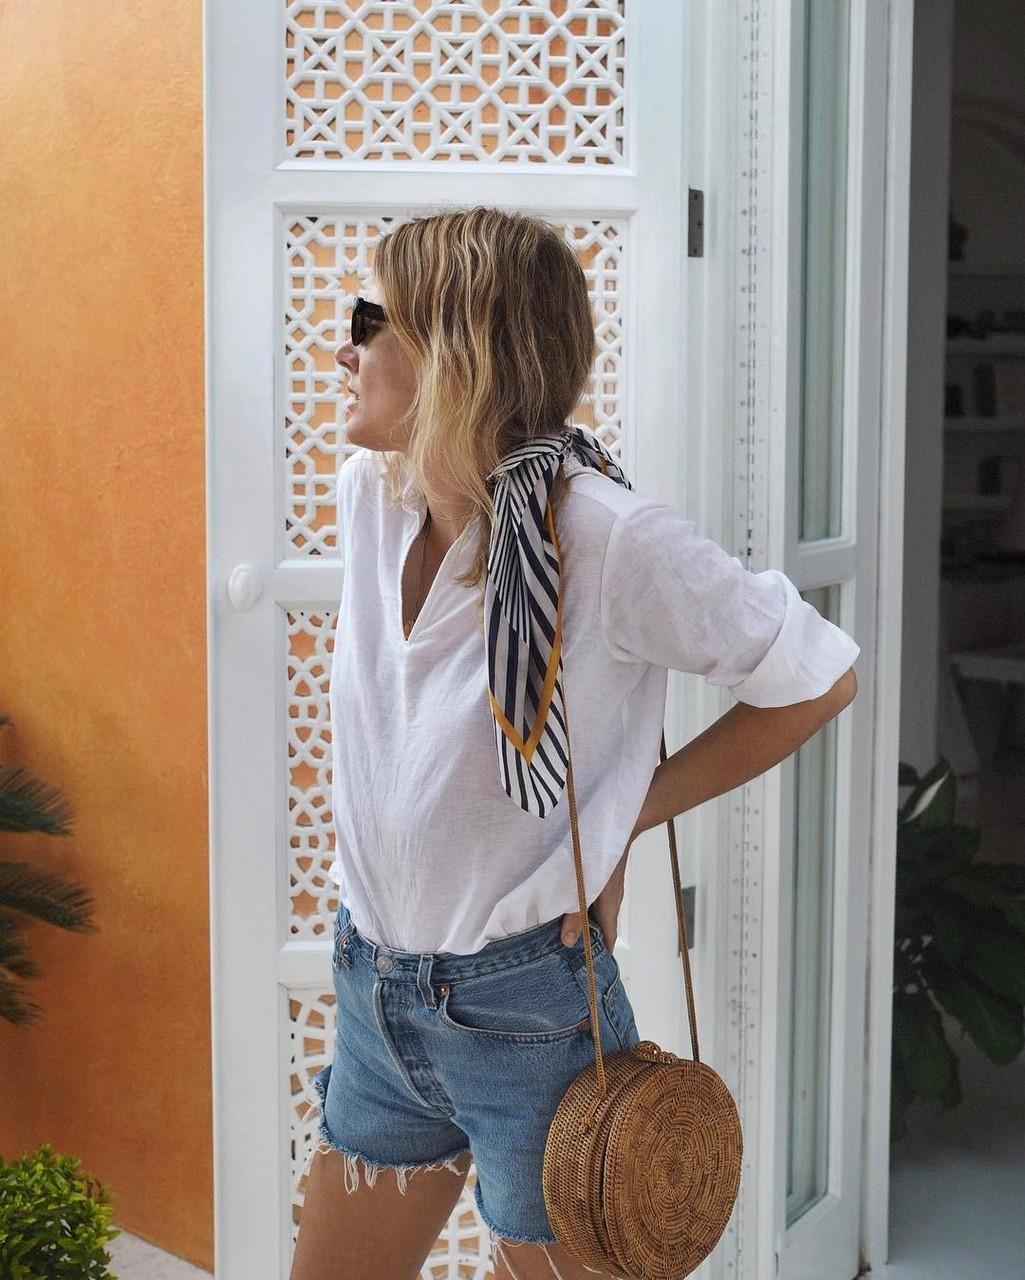 style and street style image